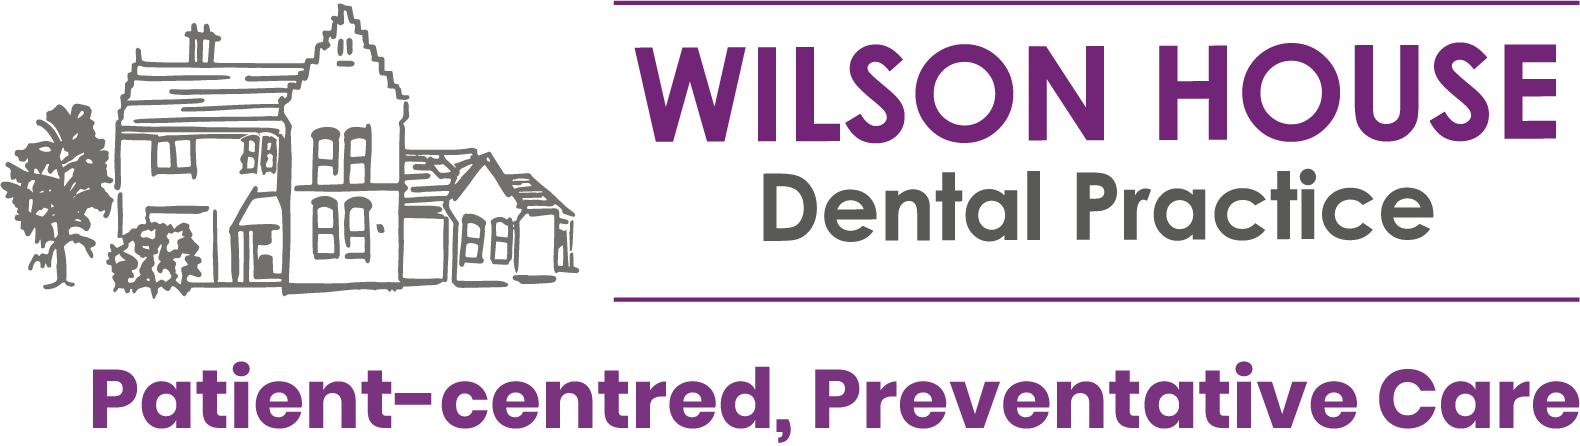 wilson house dental practice logo1